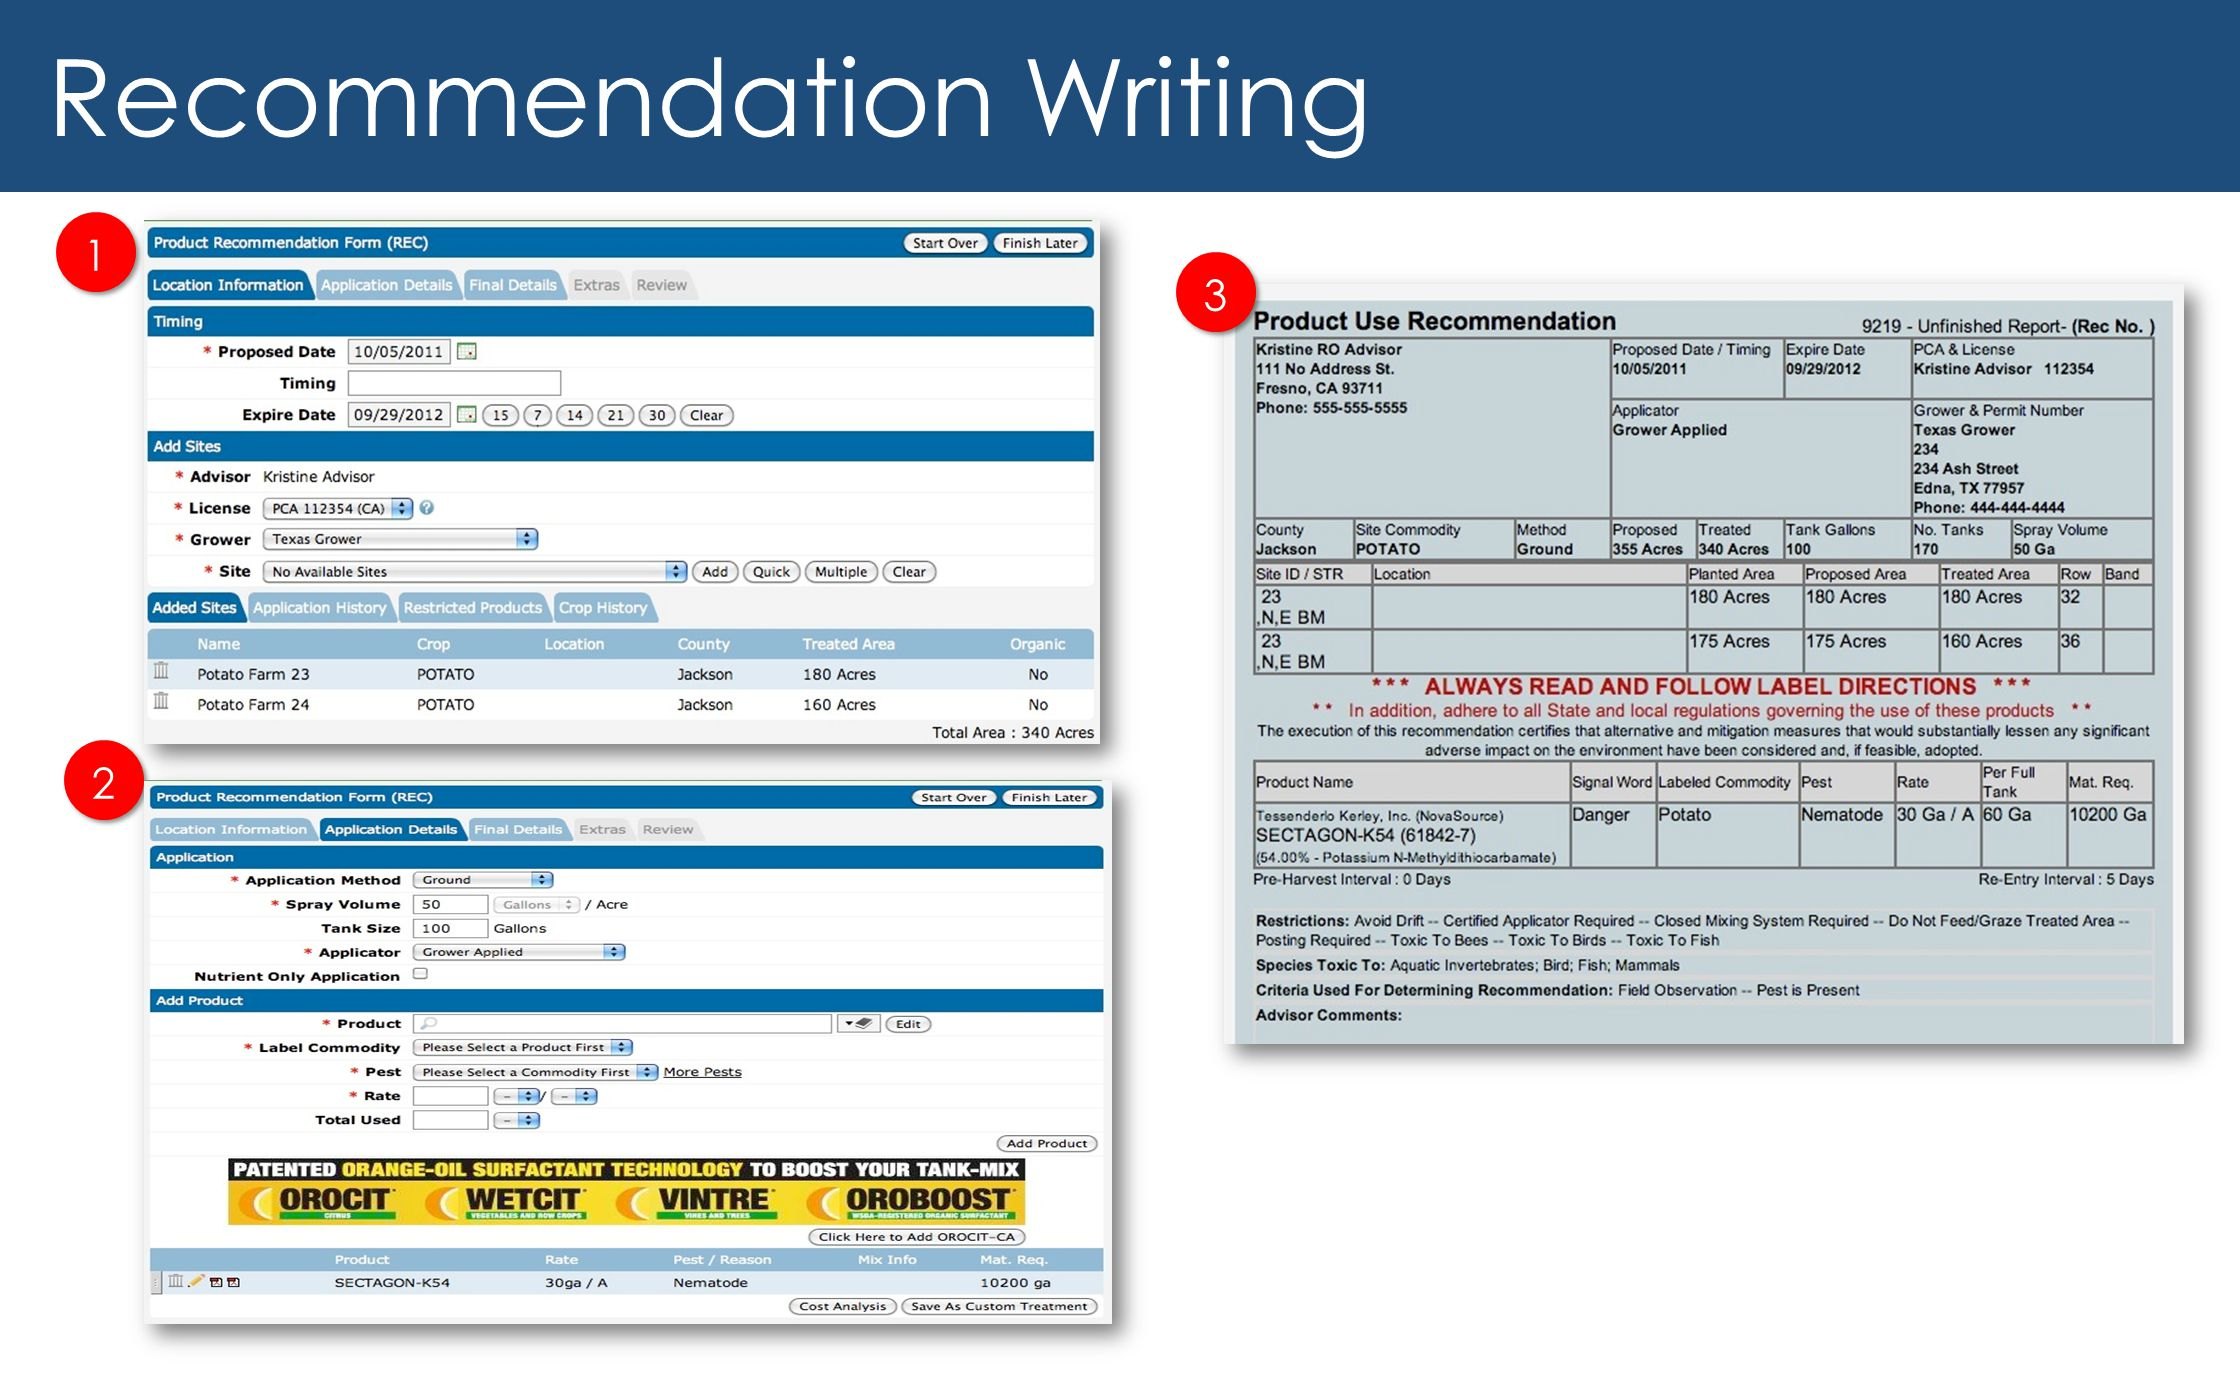 Recommendation Writing